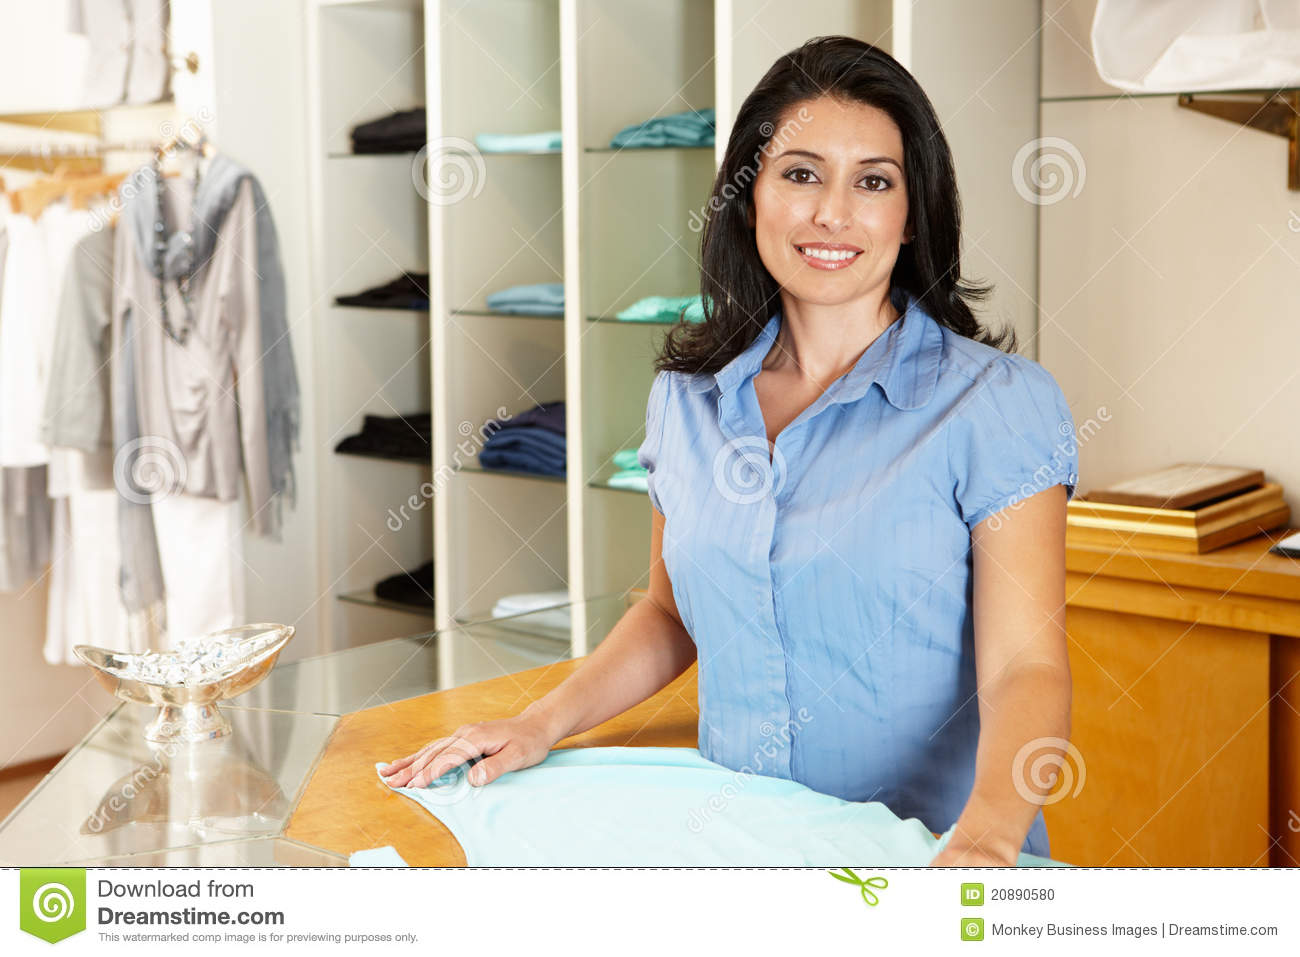 Working at a clothing store